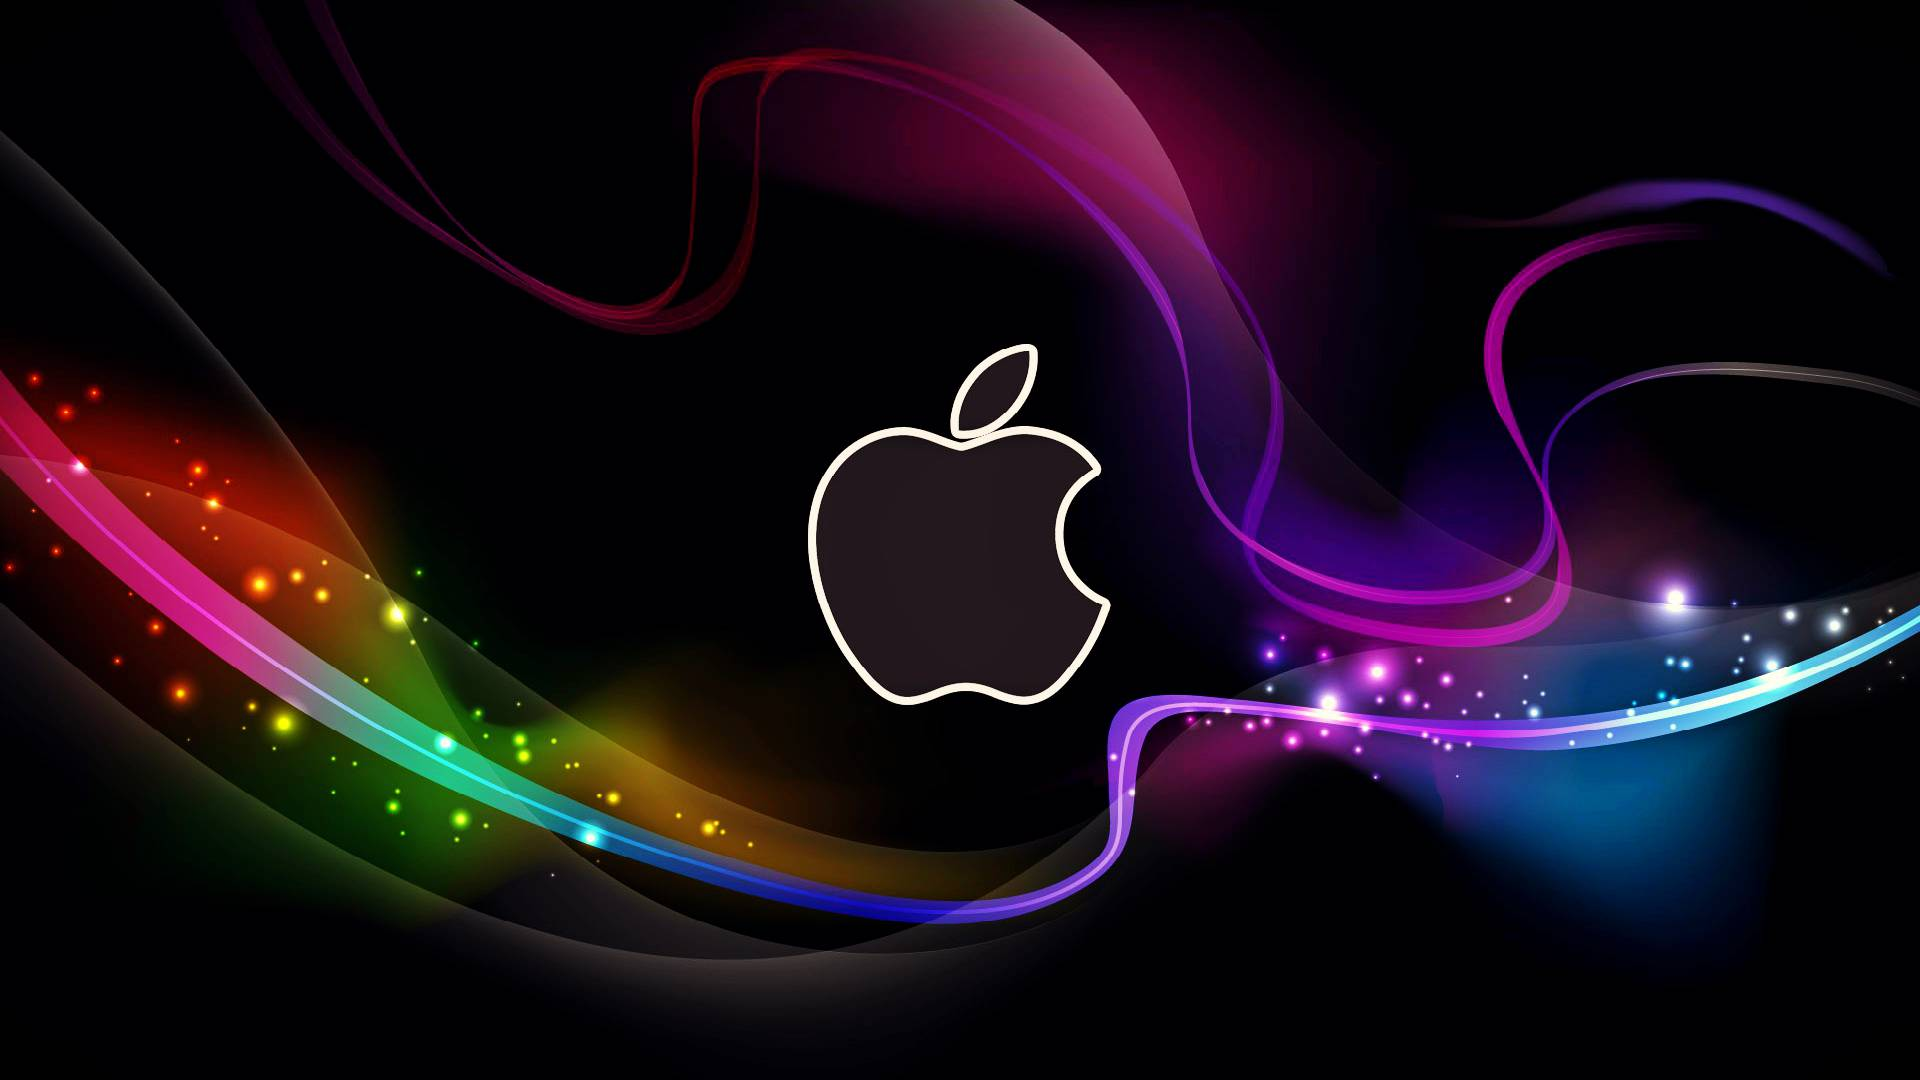 Cool Apple Logo Wallpapers 1920x1080